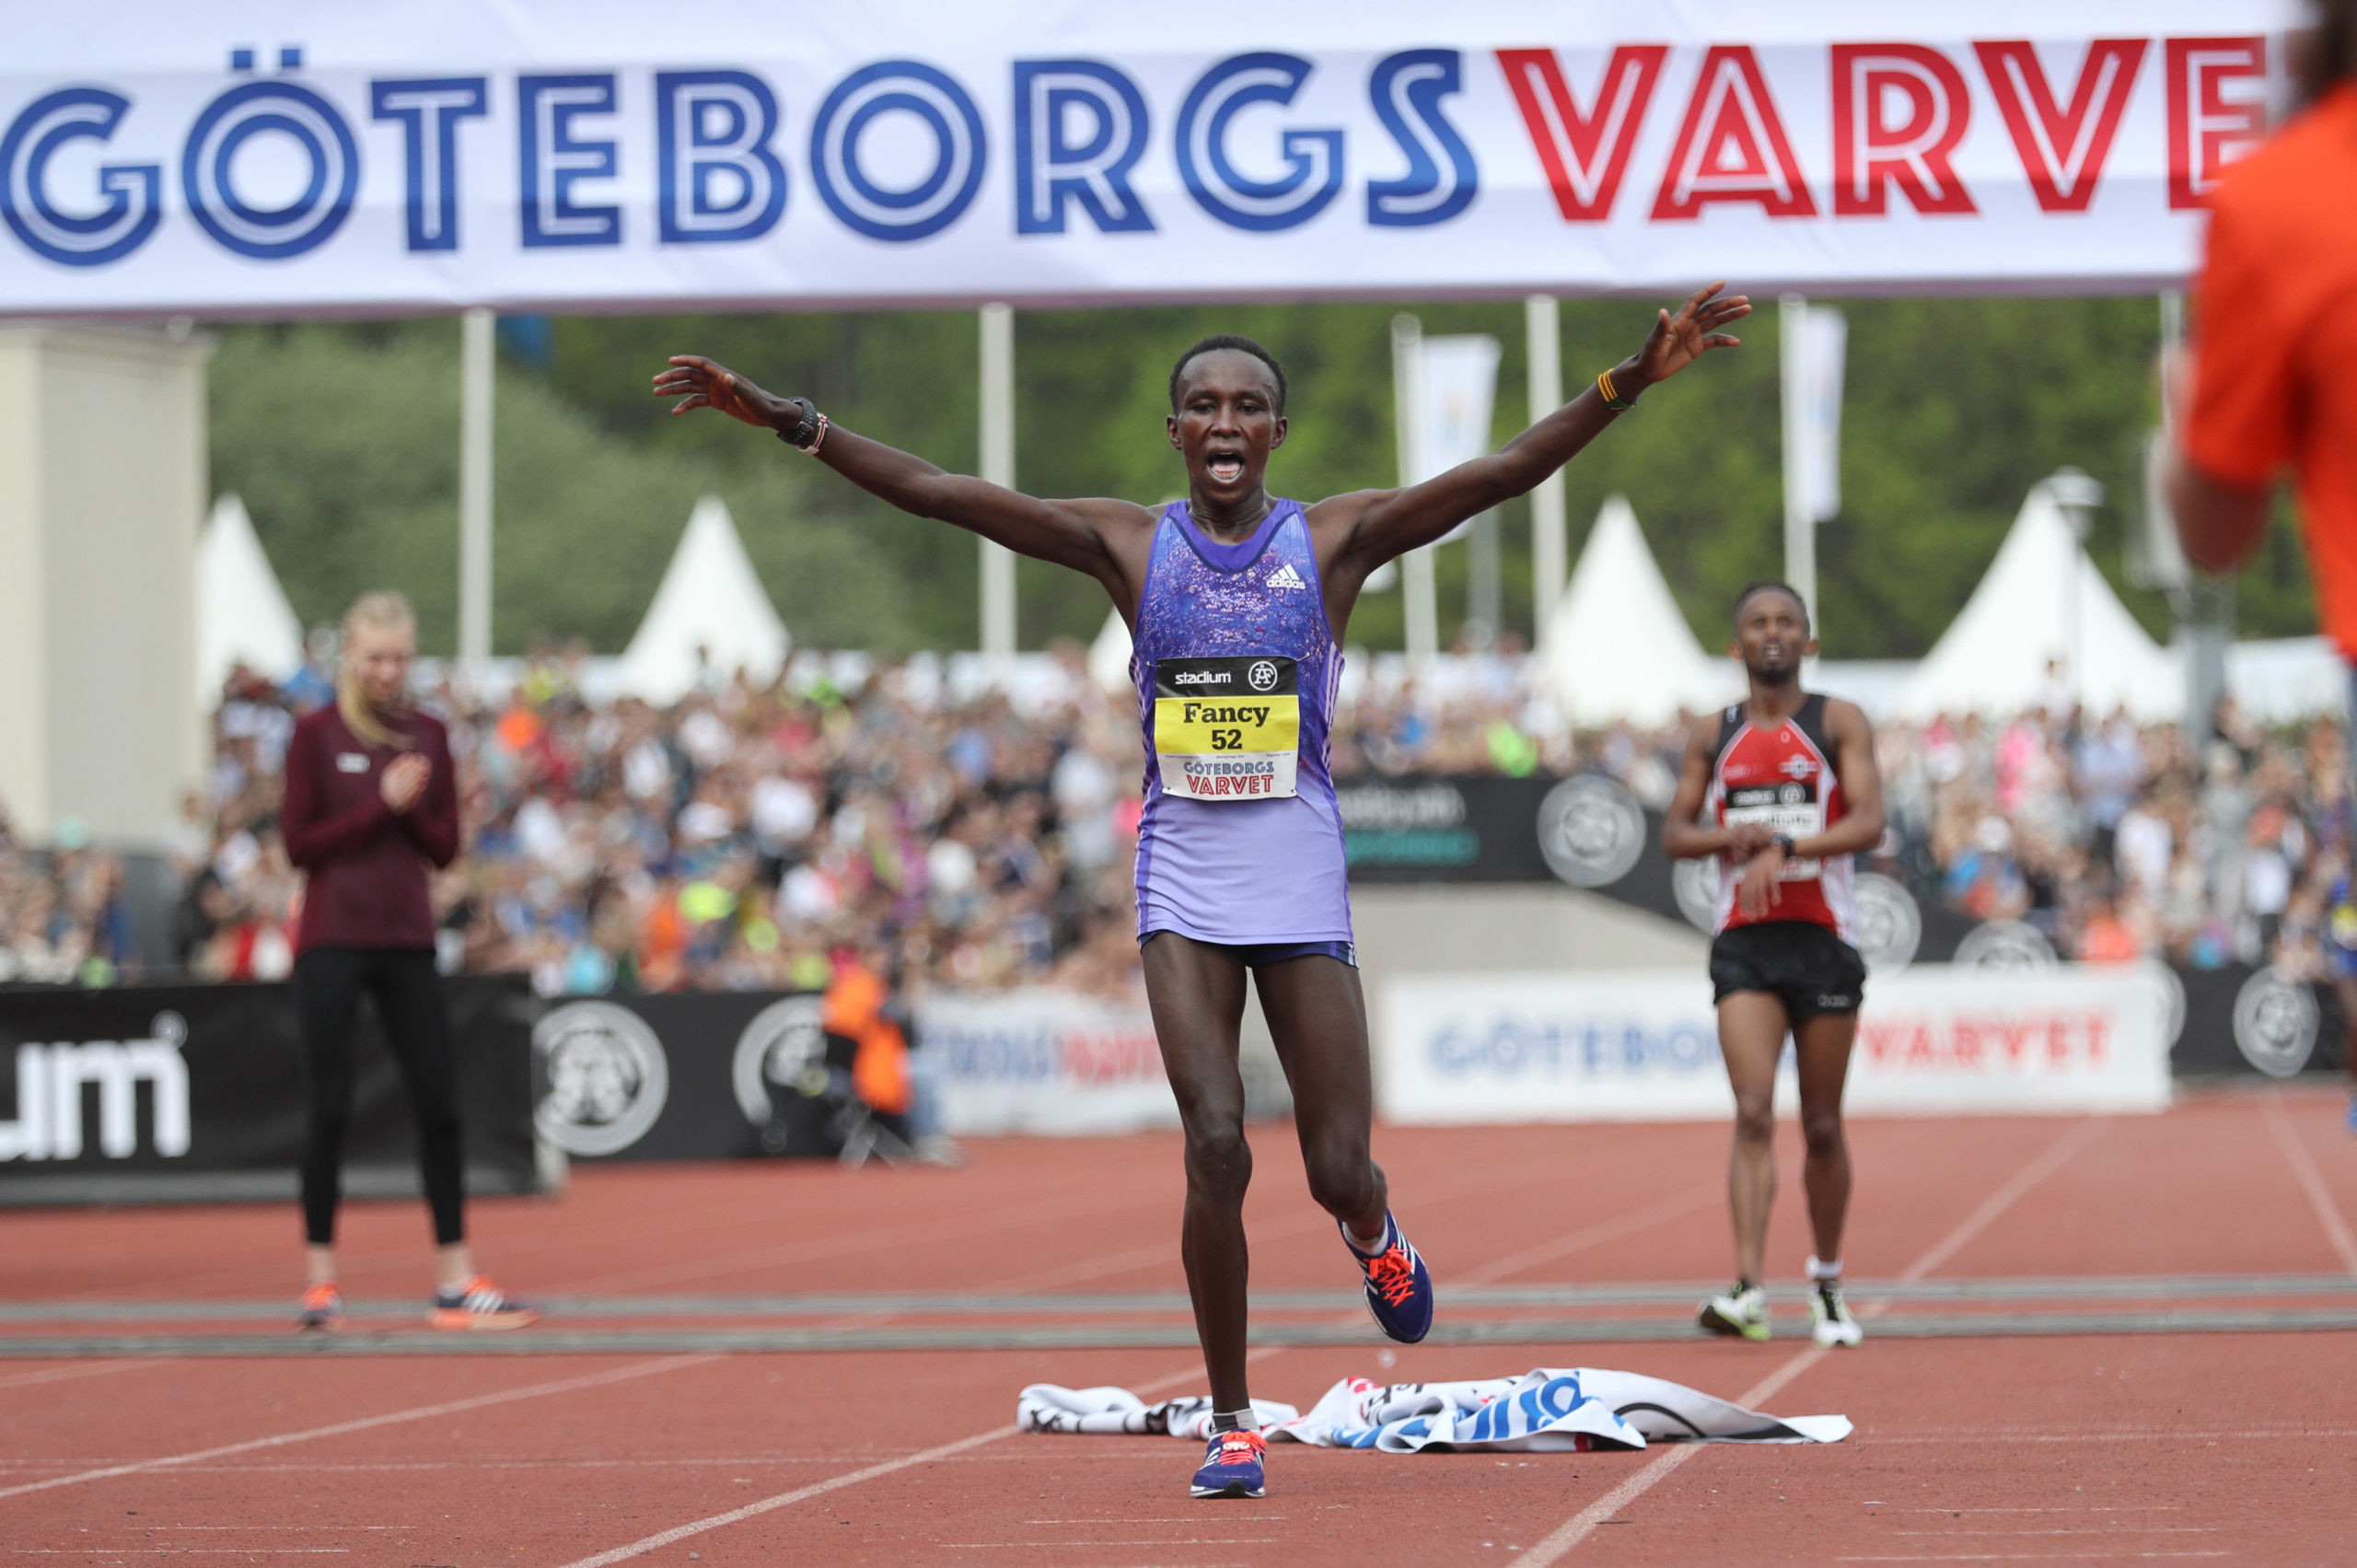 Former World Half Marathon bronze medalist Fancy Chemutai will compete in her second half marathon in Prague